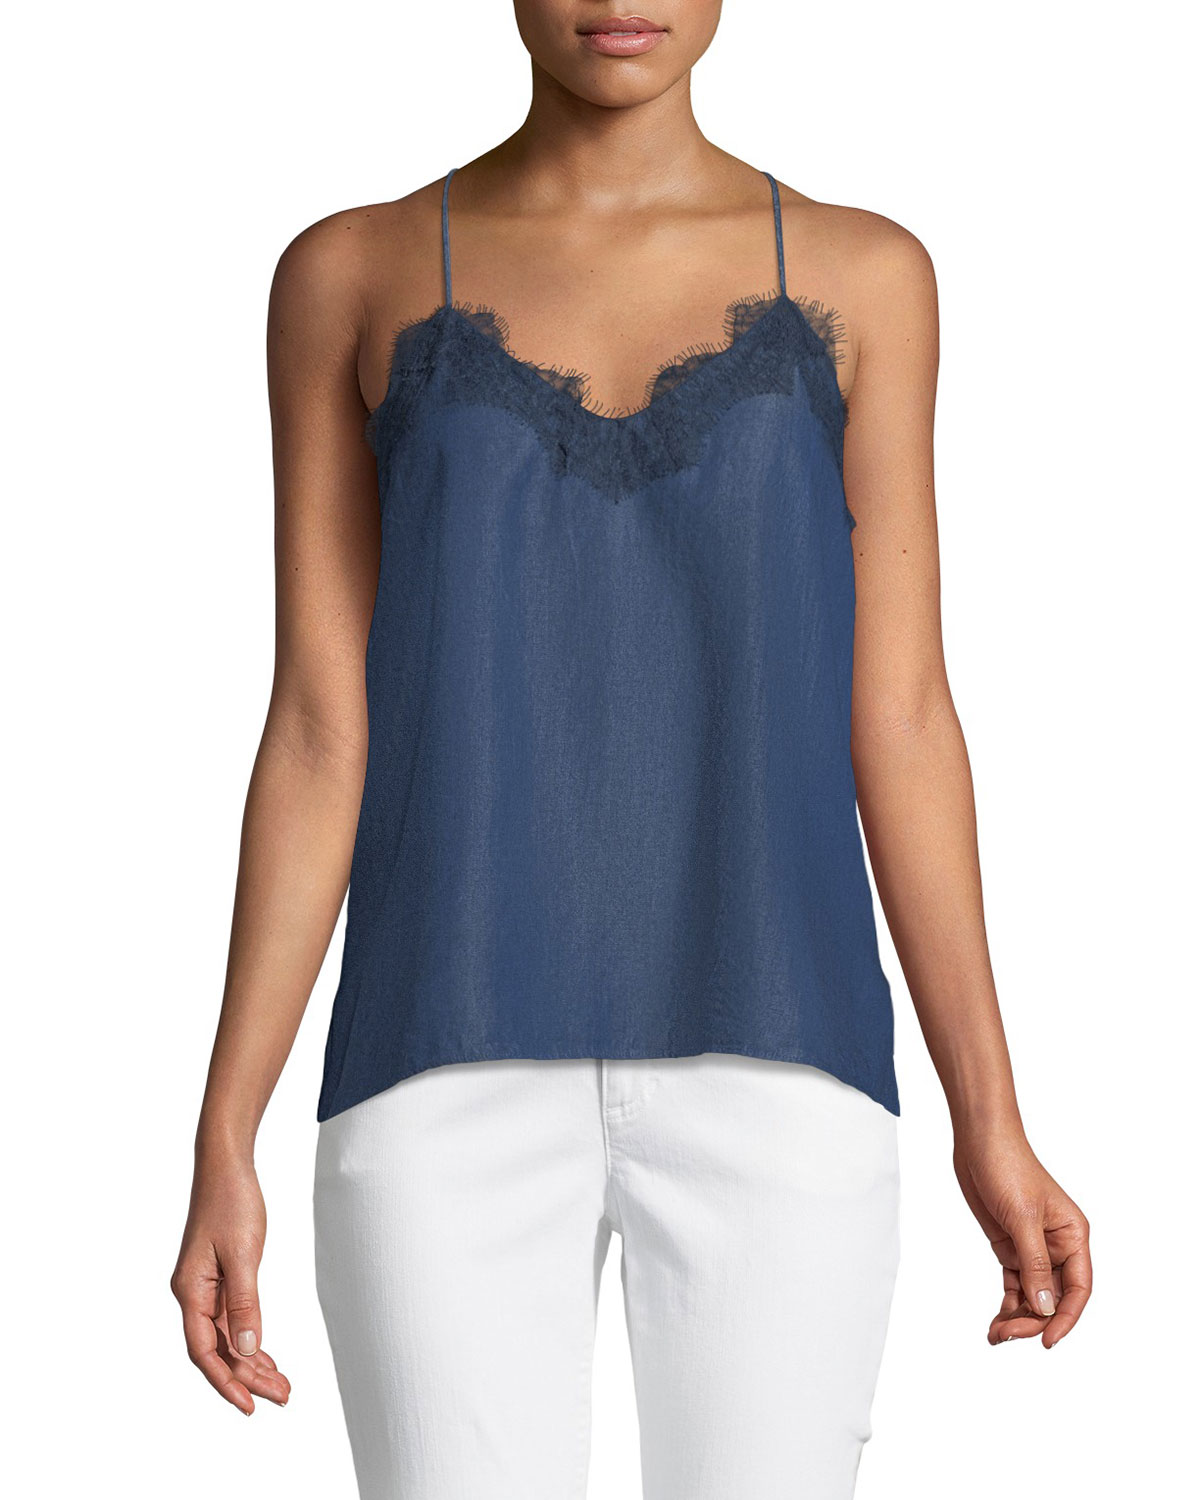 Cami Nyc THE RACER CHAMBRAY CAMI TOP WITH LACE TRIM